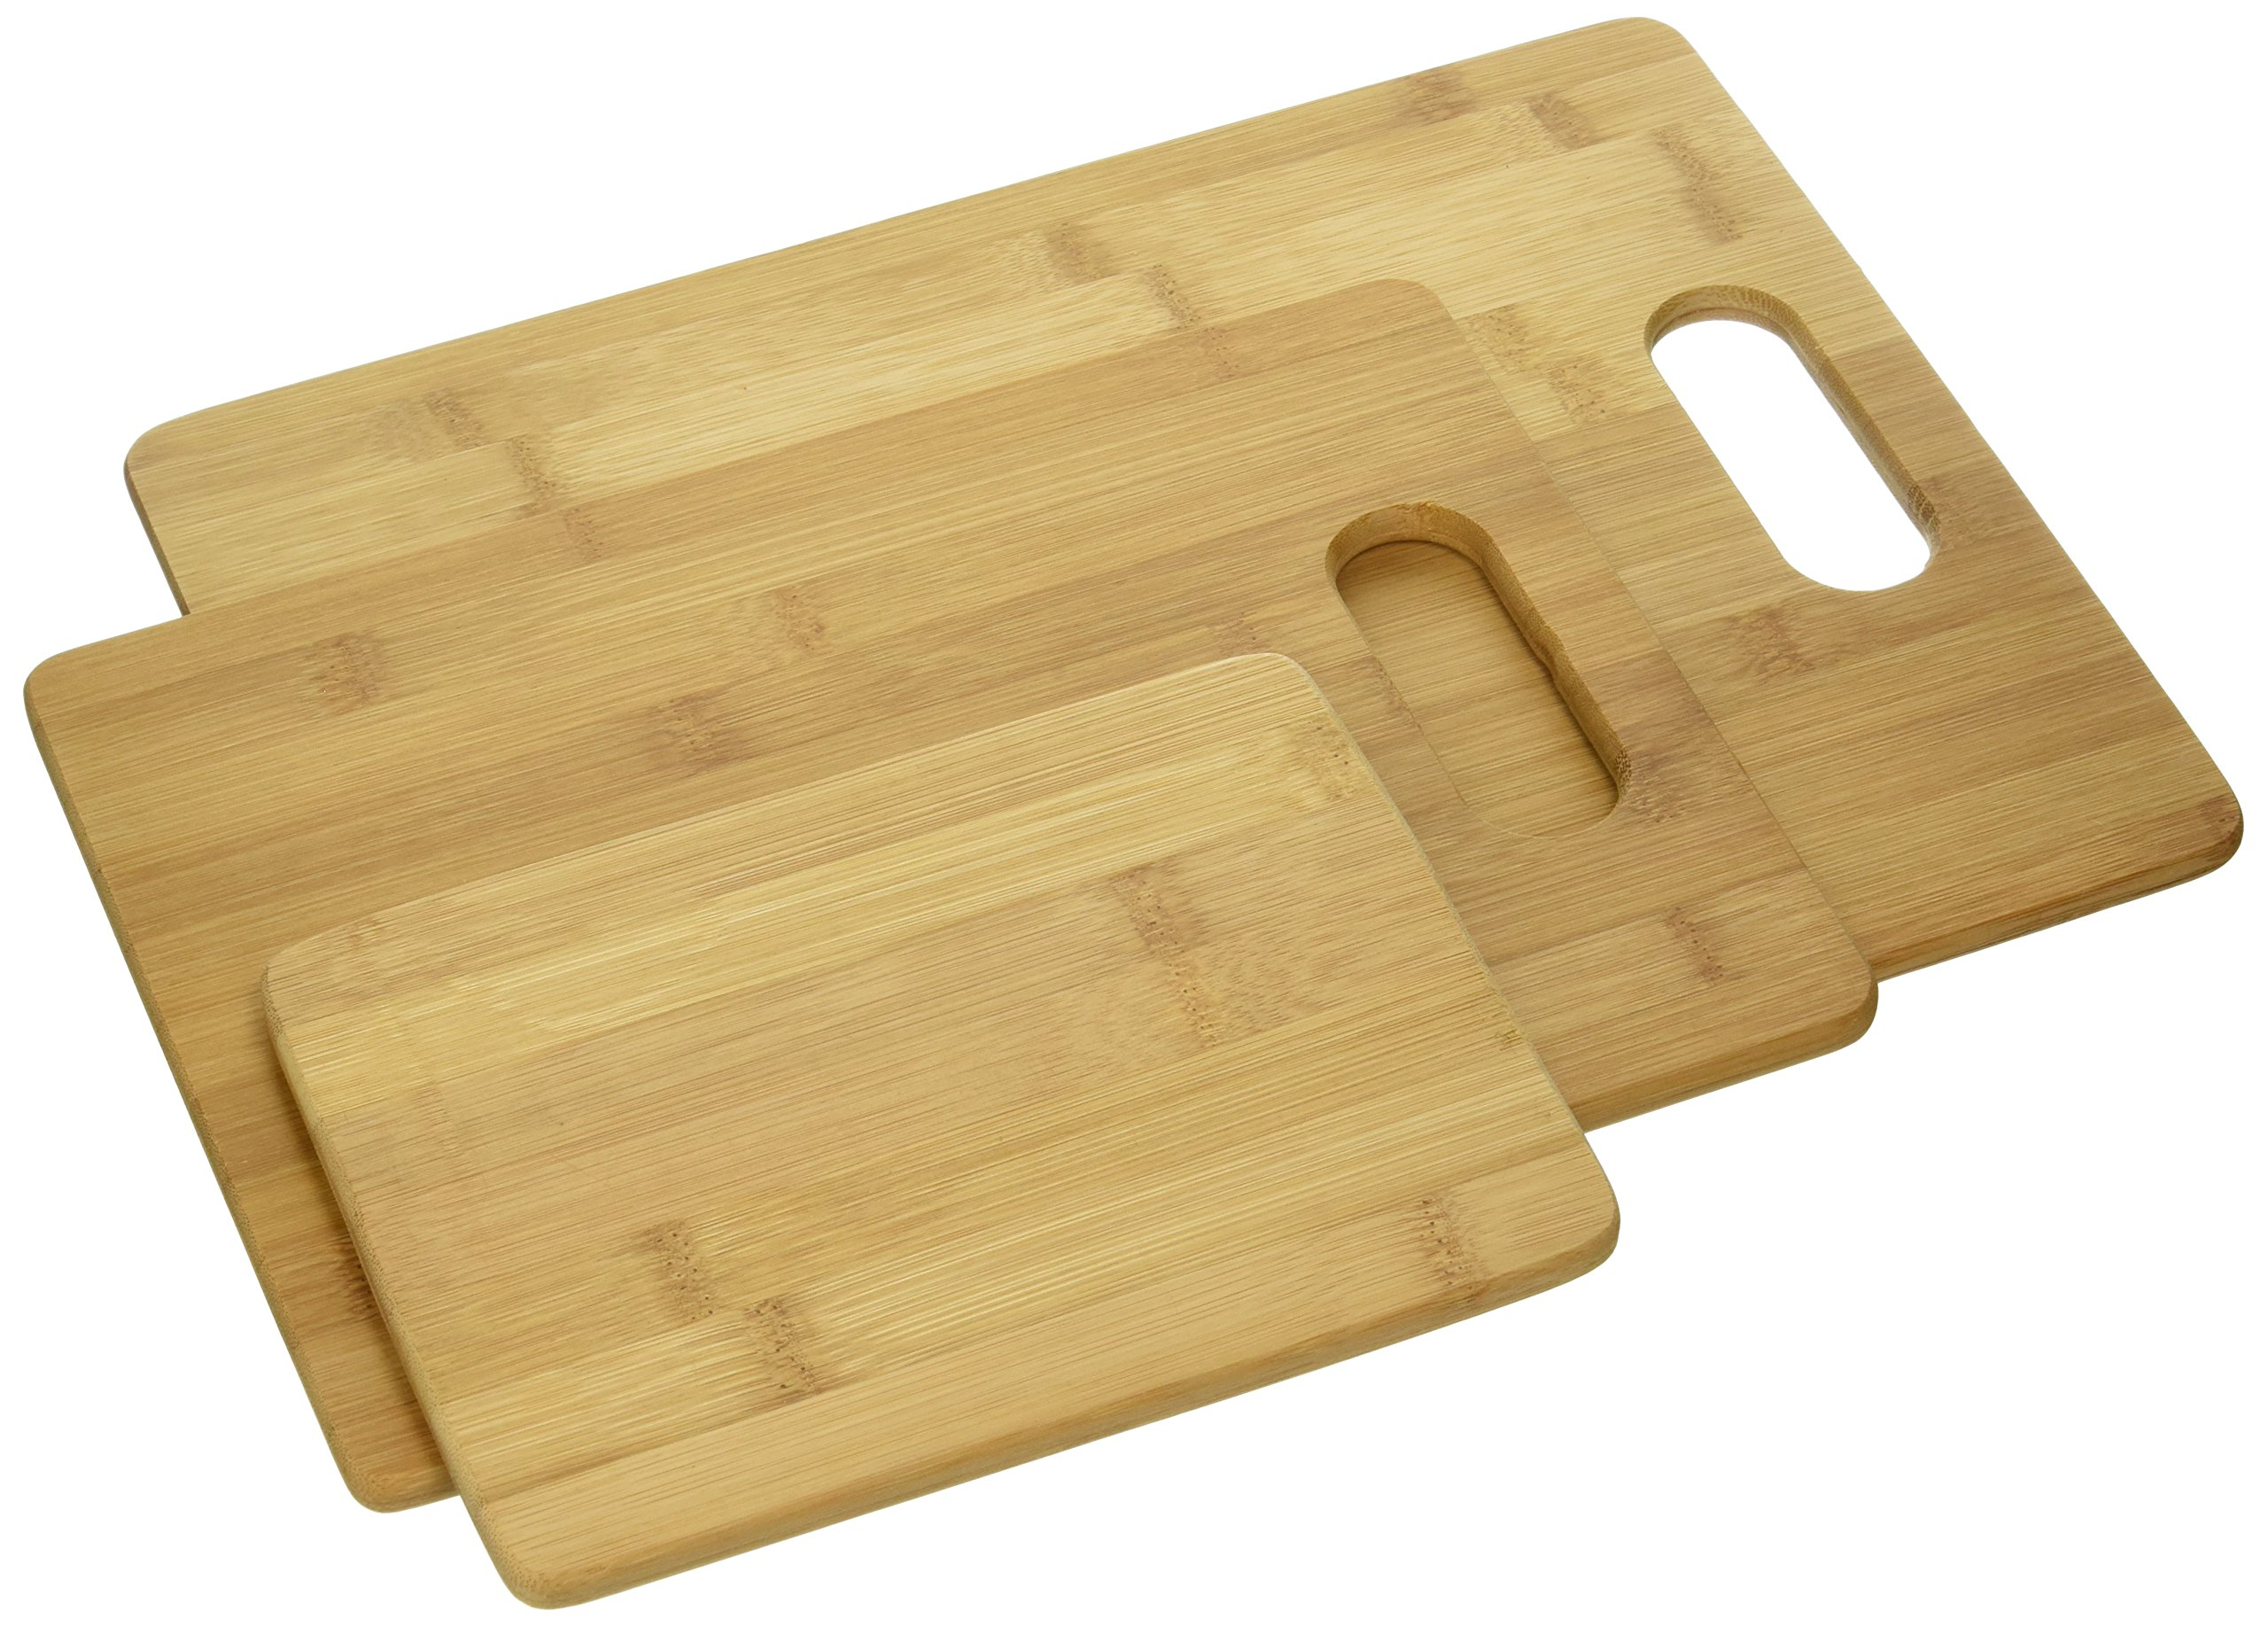 Everyday Essentials 3 Piece Cutting Cocktail Bar Board Set For Meat & Veggie Prep, Serve Bread, Crackers & Cheese, Bamboo